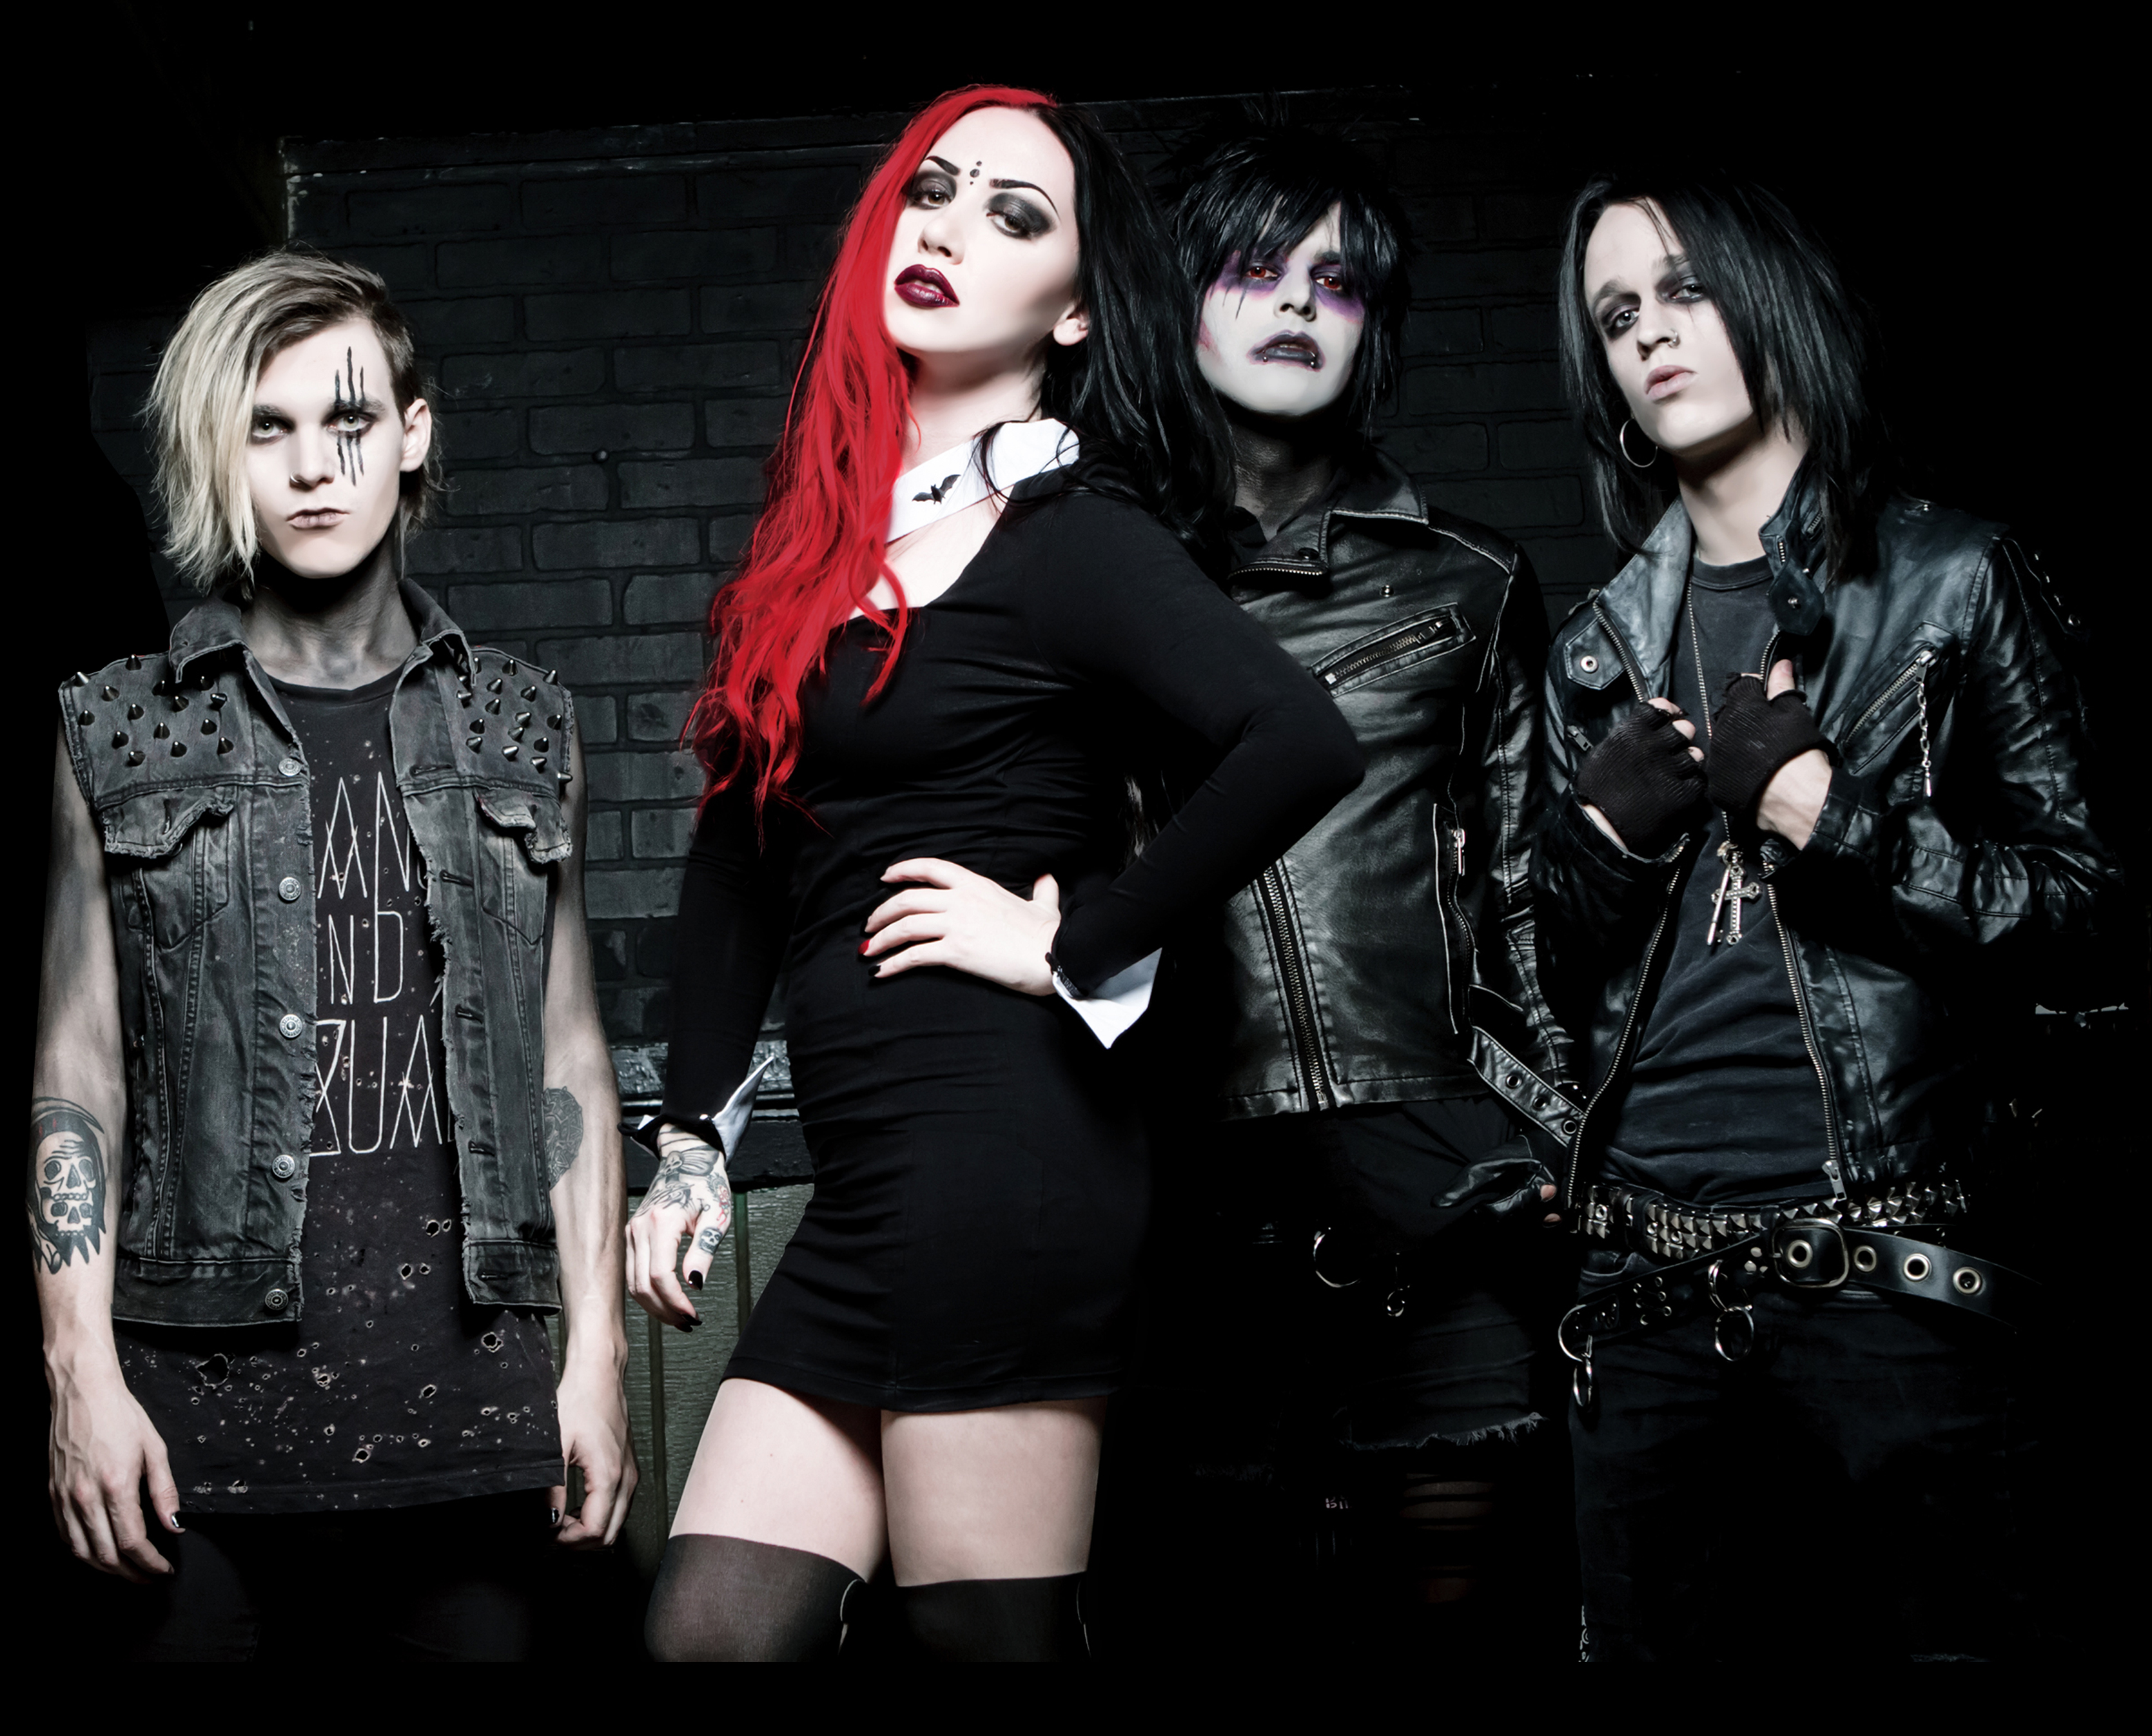 NEW YEARS DAY * GET SCARED * EYES SET TO KILL * THE ...